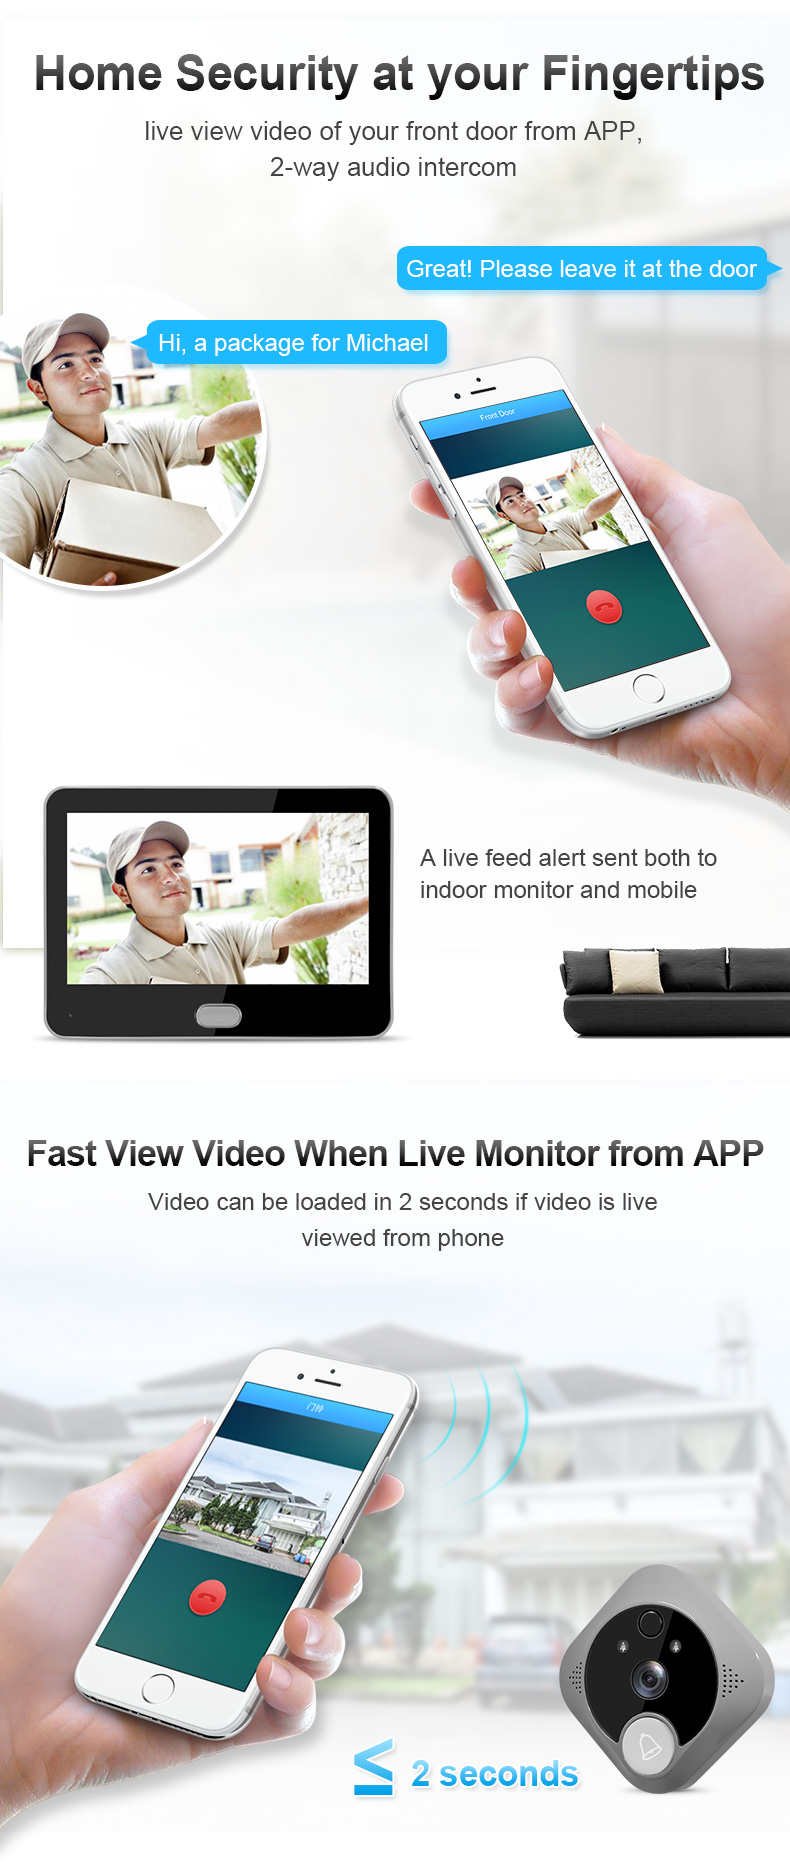 5.intercom+live video.jpg